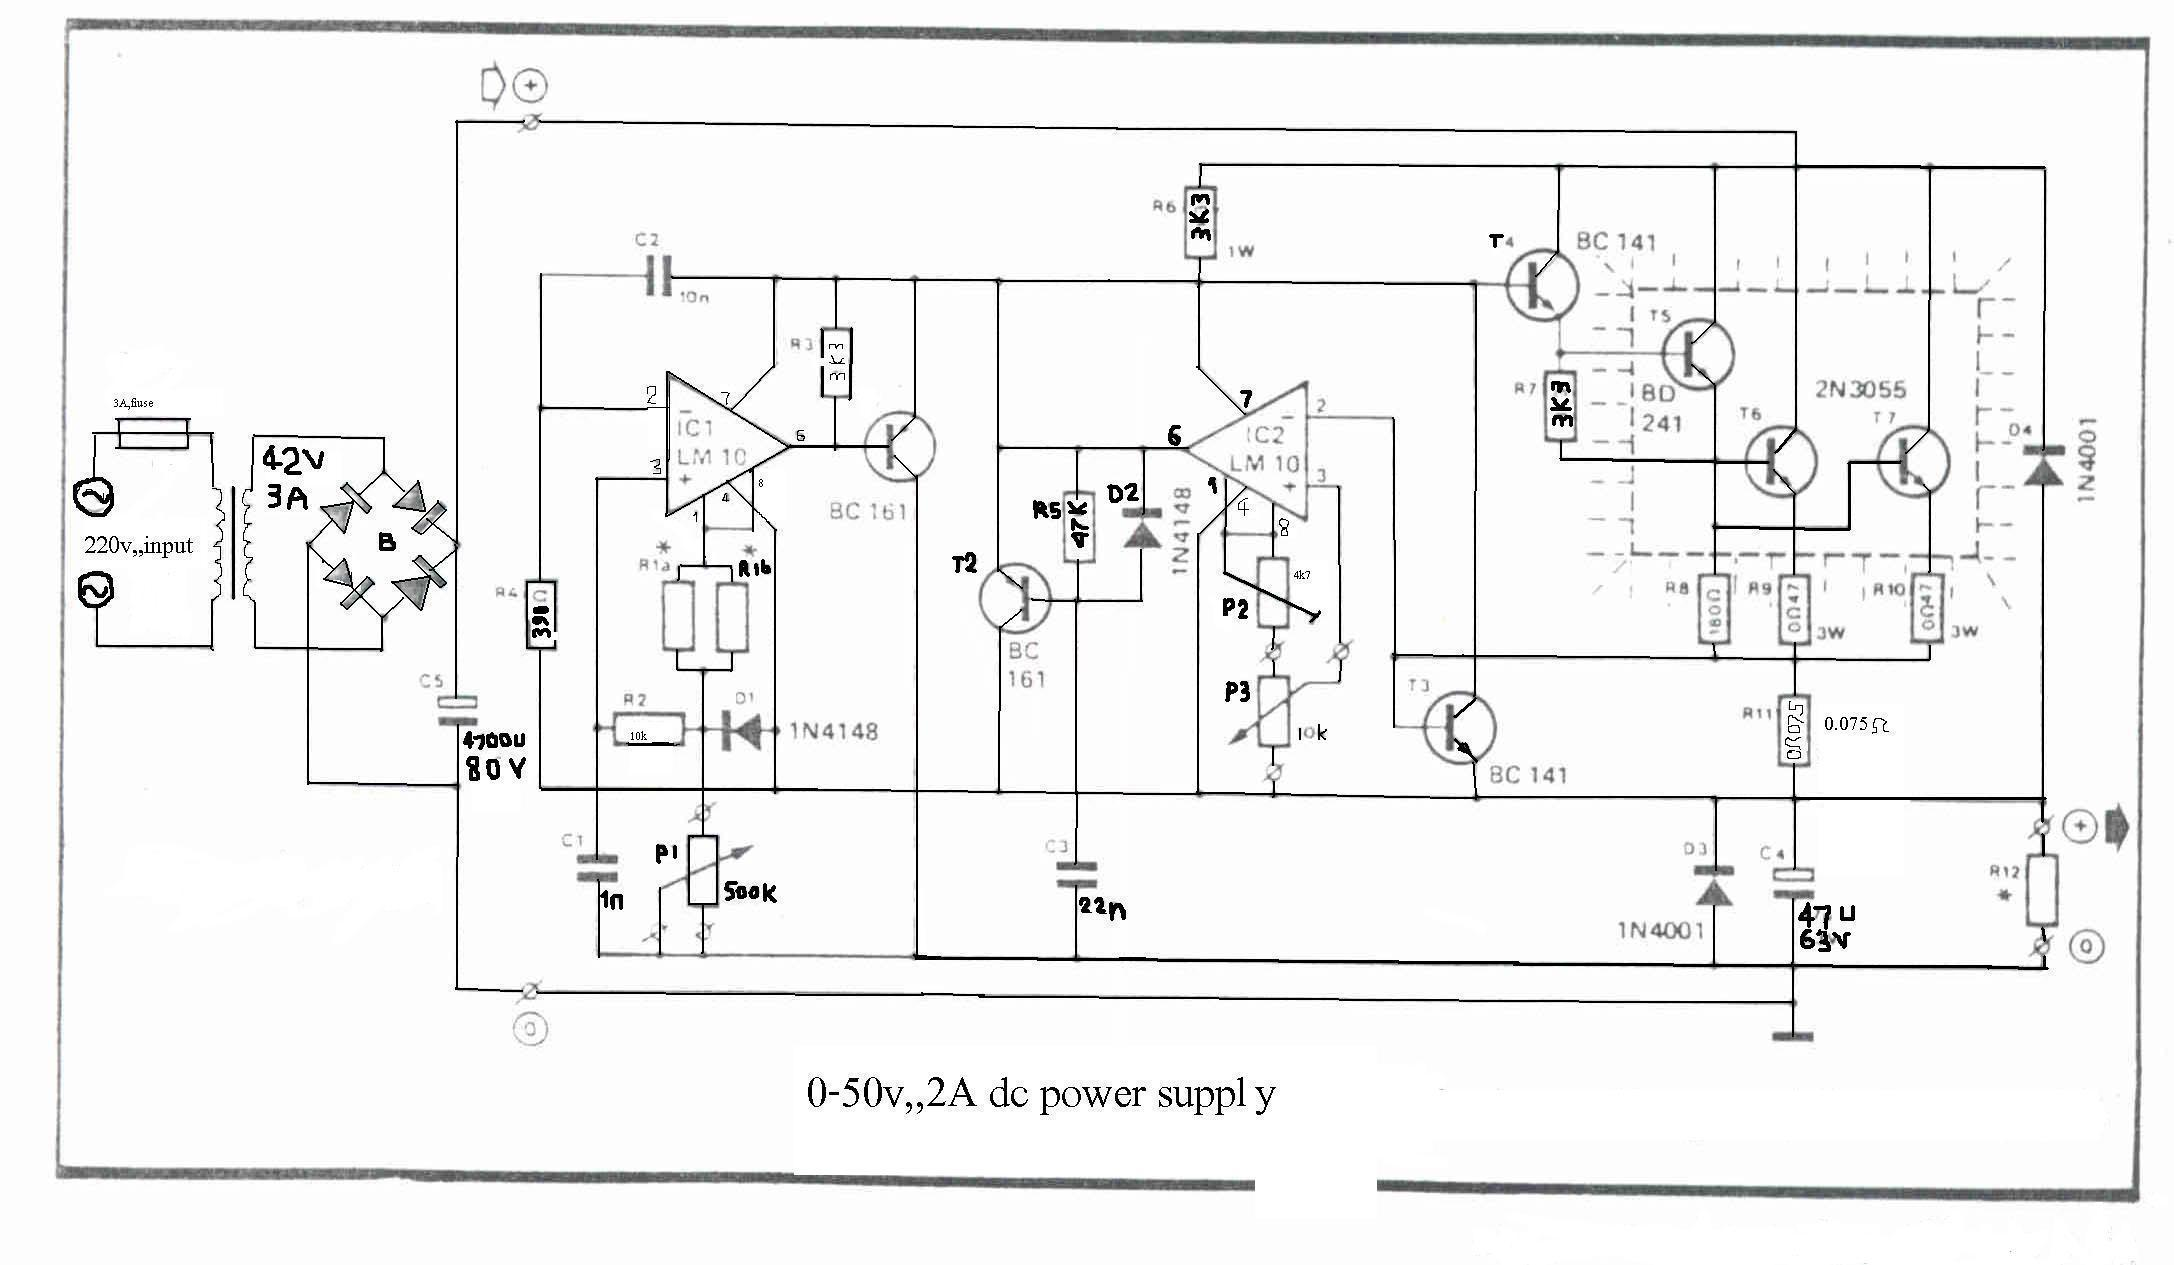 Dual Voltage Power Supply Electronic Circuit Diagram Wiring Com Circuitdiagram Powersupplycircuit Theinvertercircuit10html 0 50v 2a Bench Diagrams Schematics 4n35 Circuits